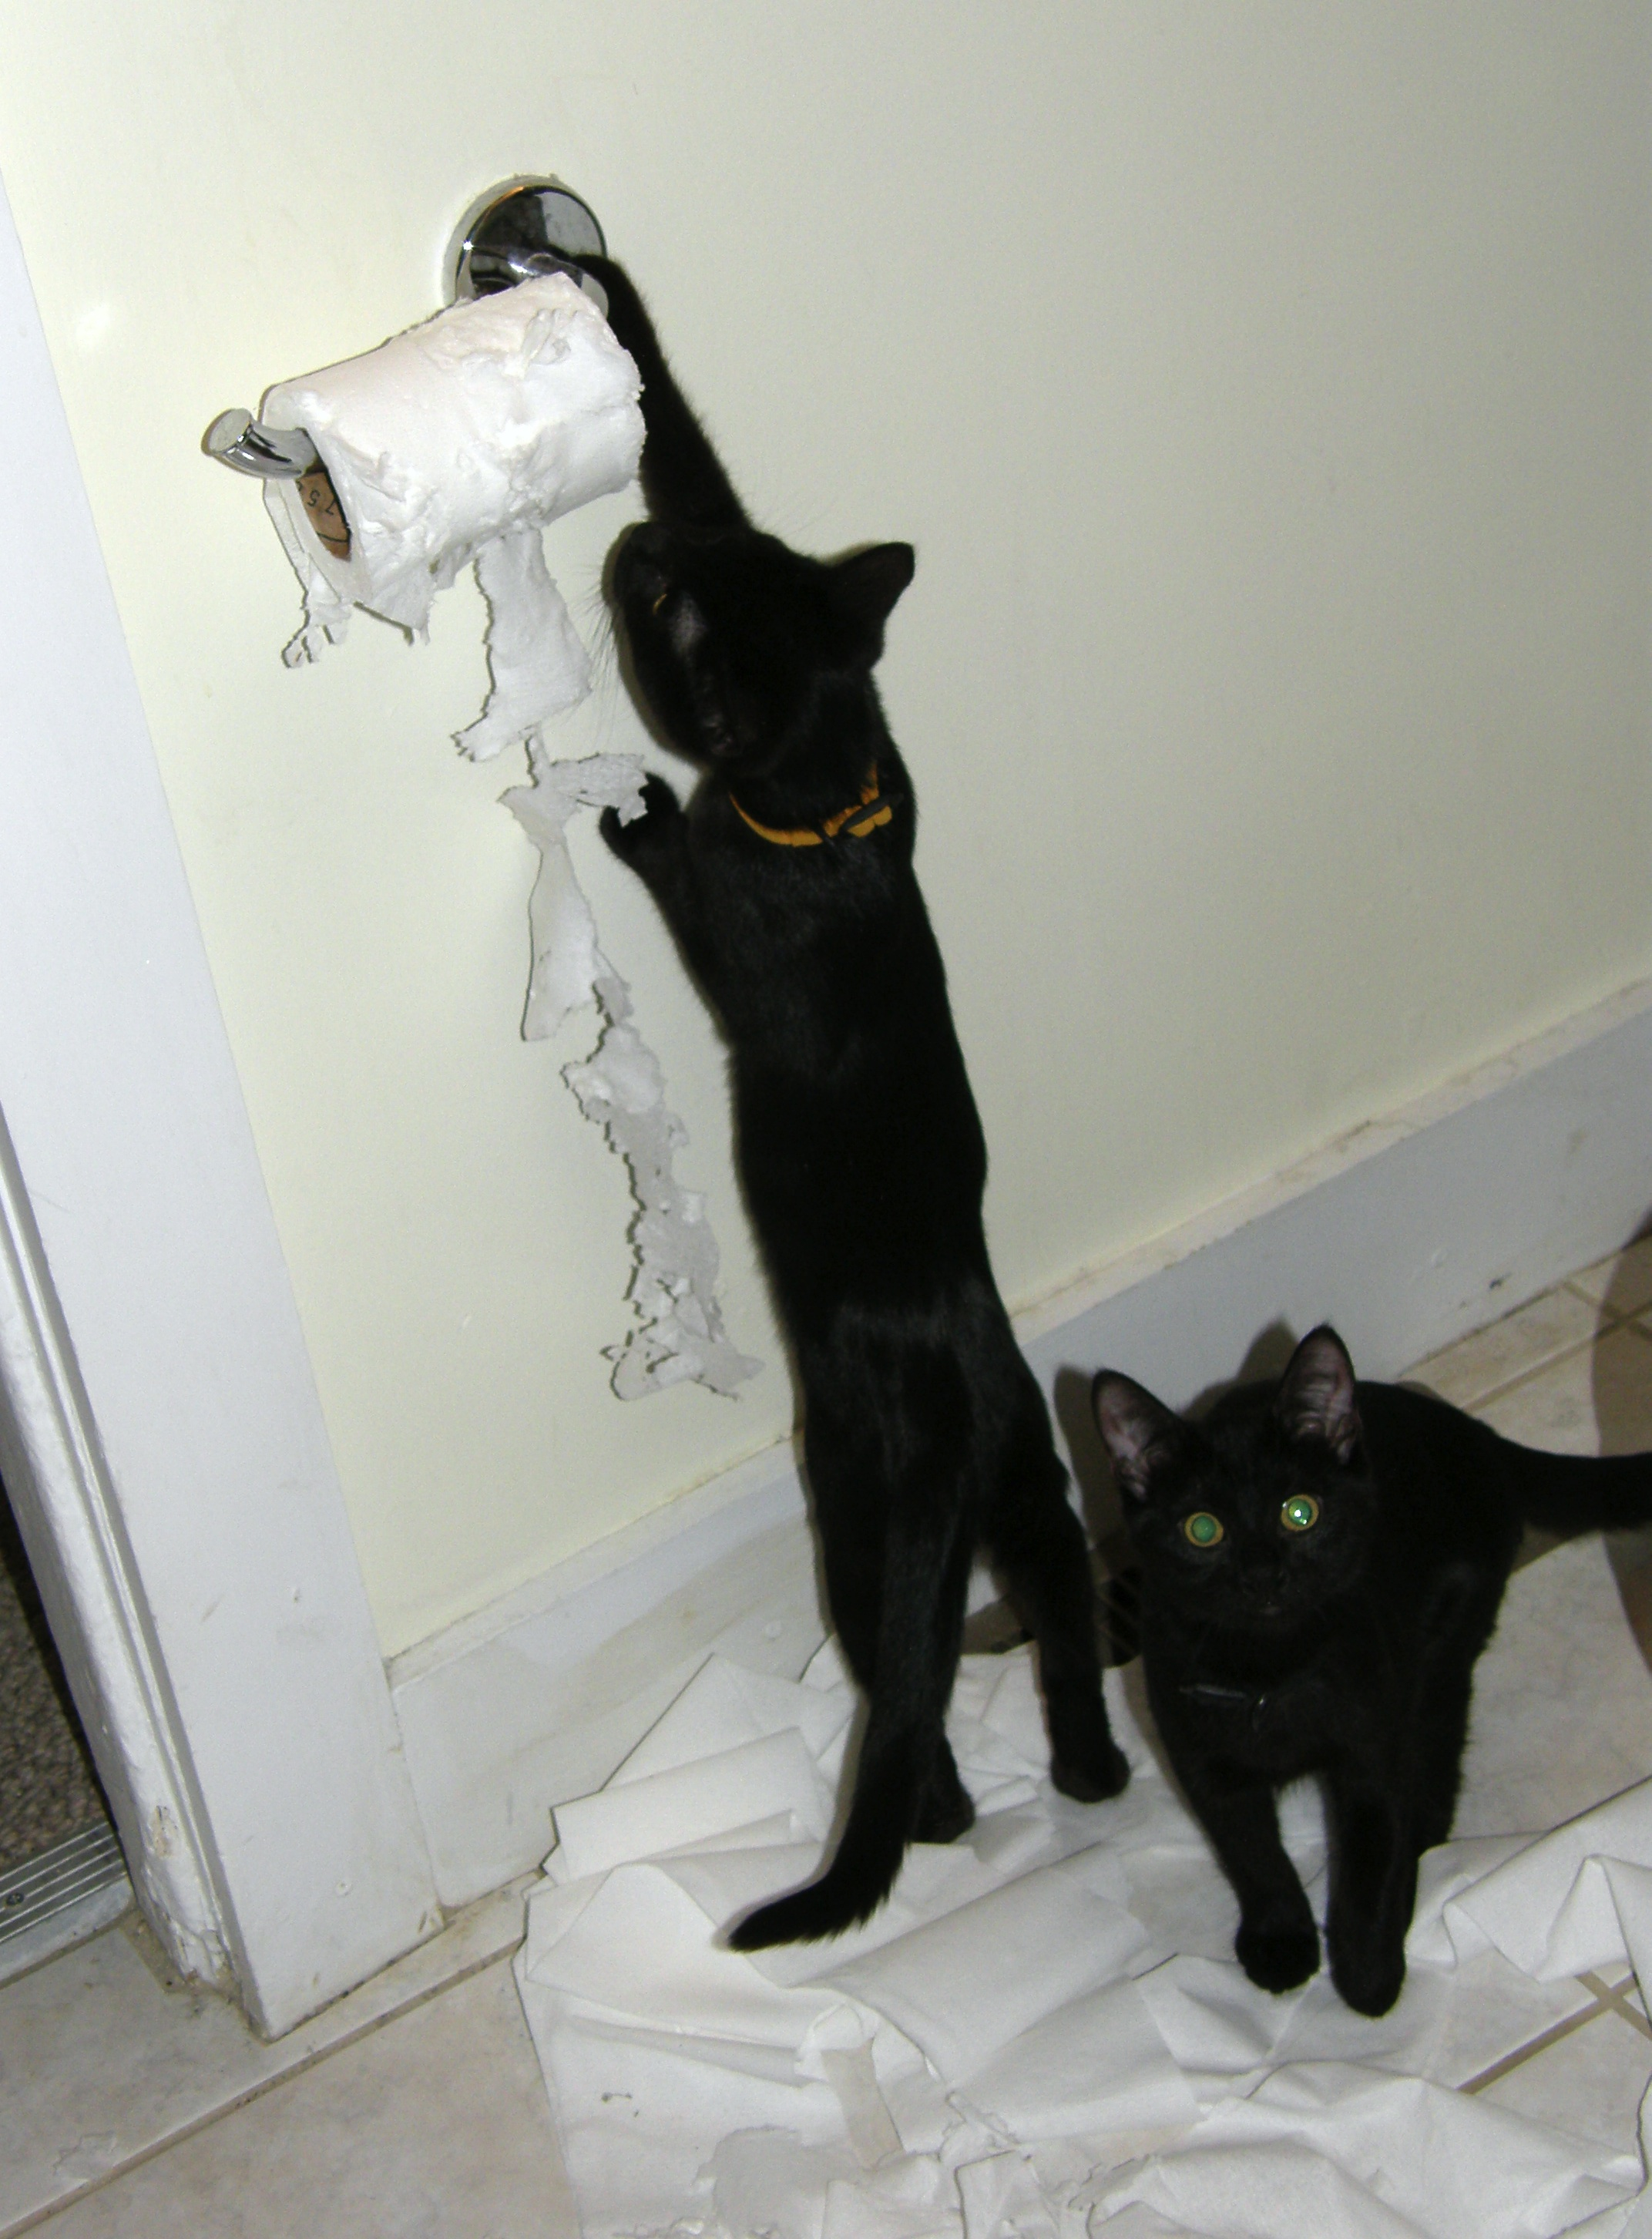 Cats_attacking_toilet_paper.jpg